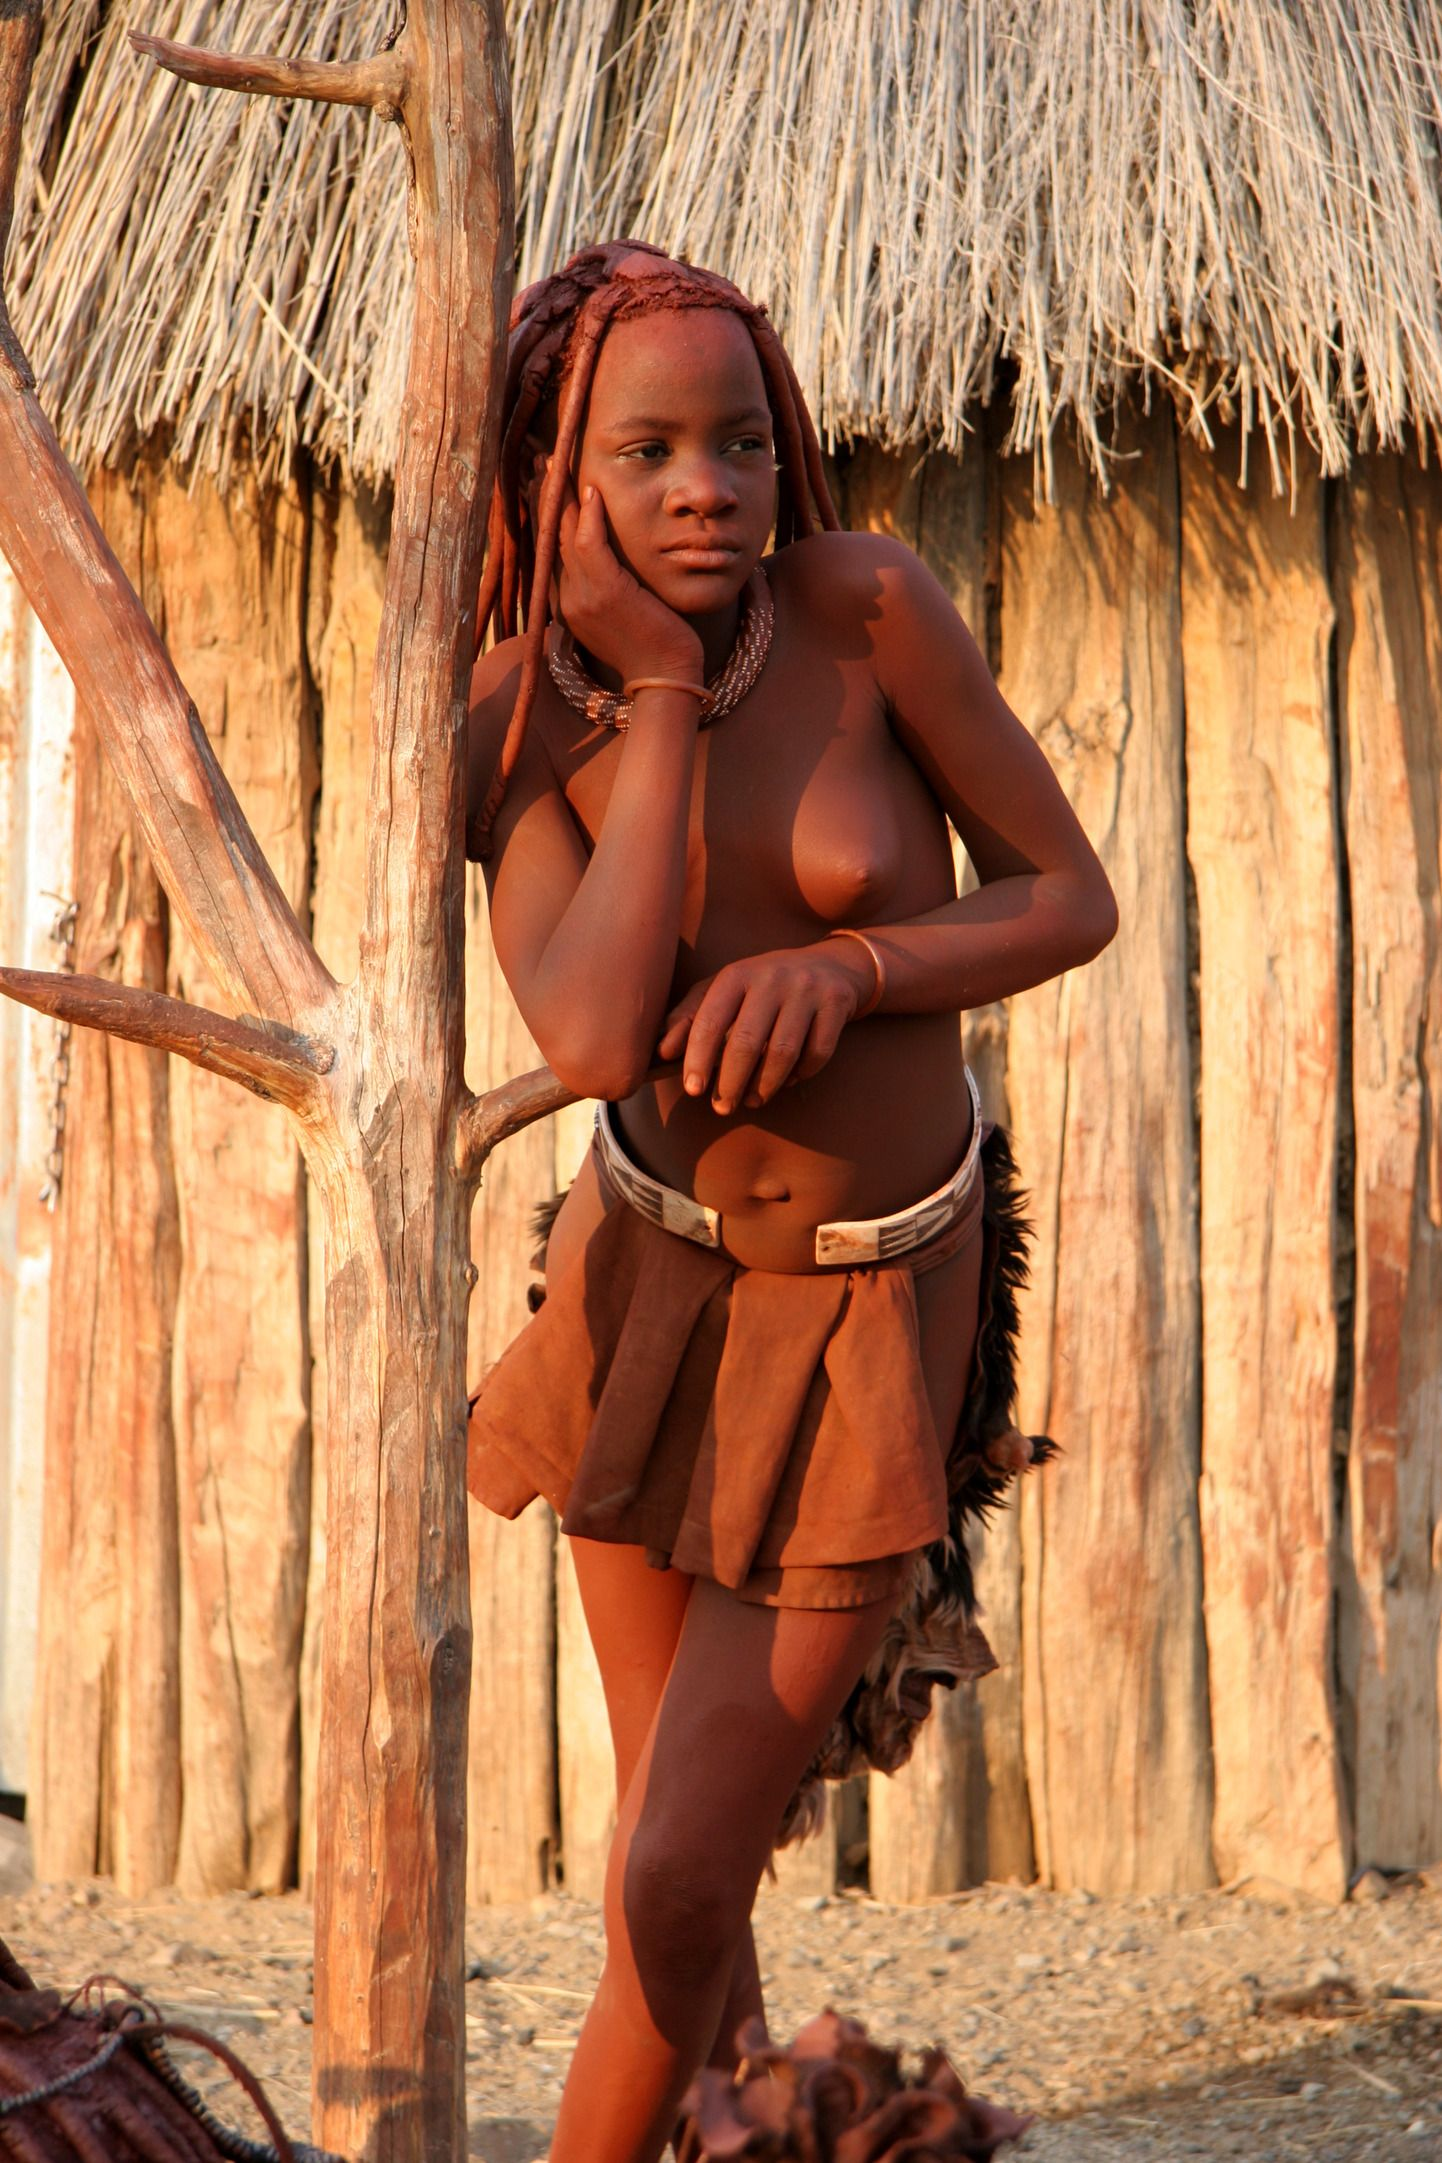 Naked girl with tribesmen, wife sex dreams